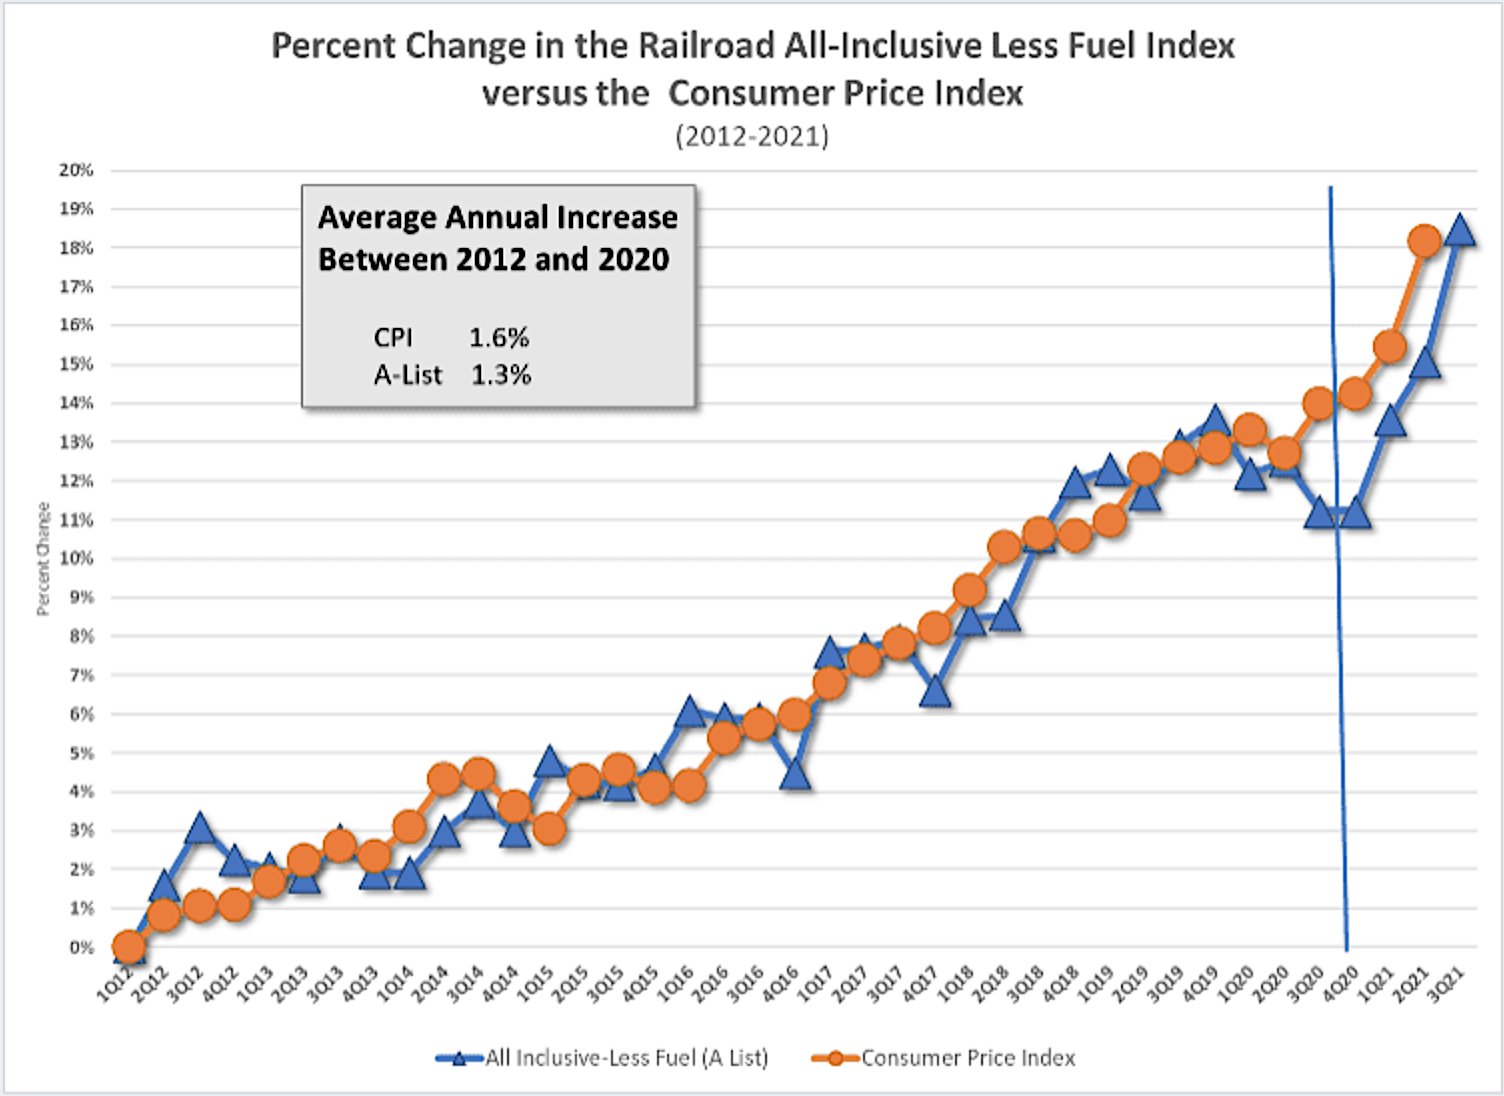 Change since Q1 2012 in the A-List index against the change in the CPI